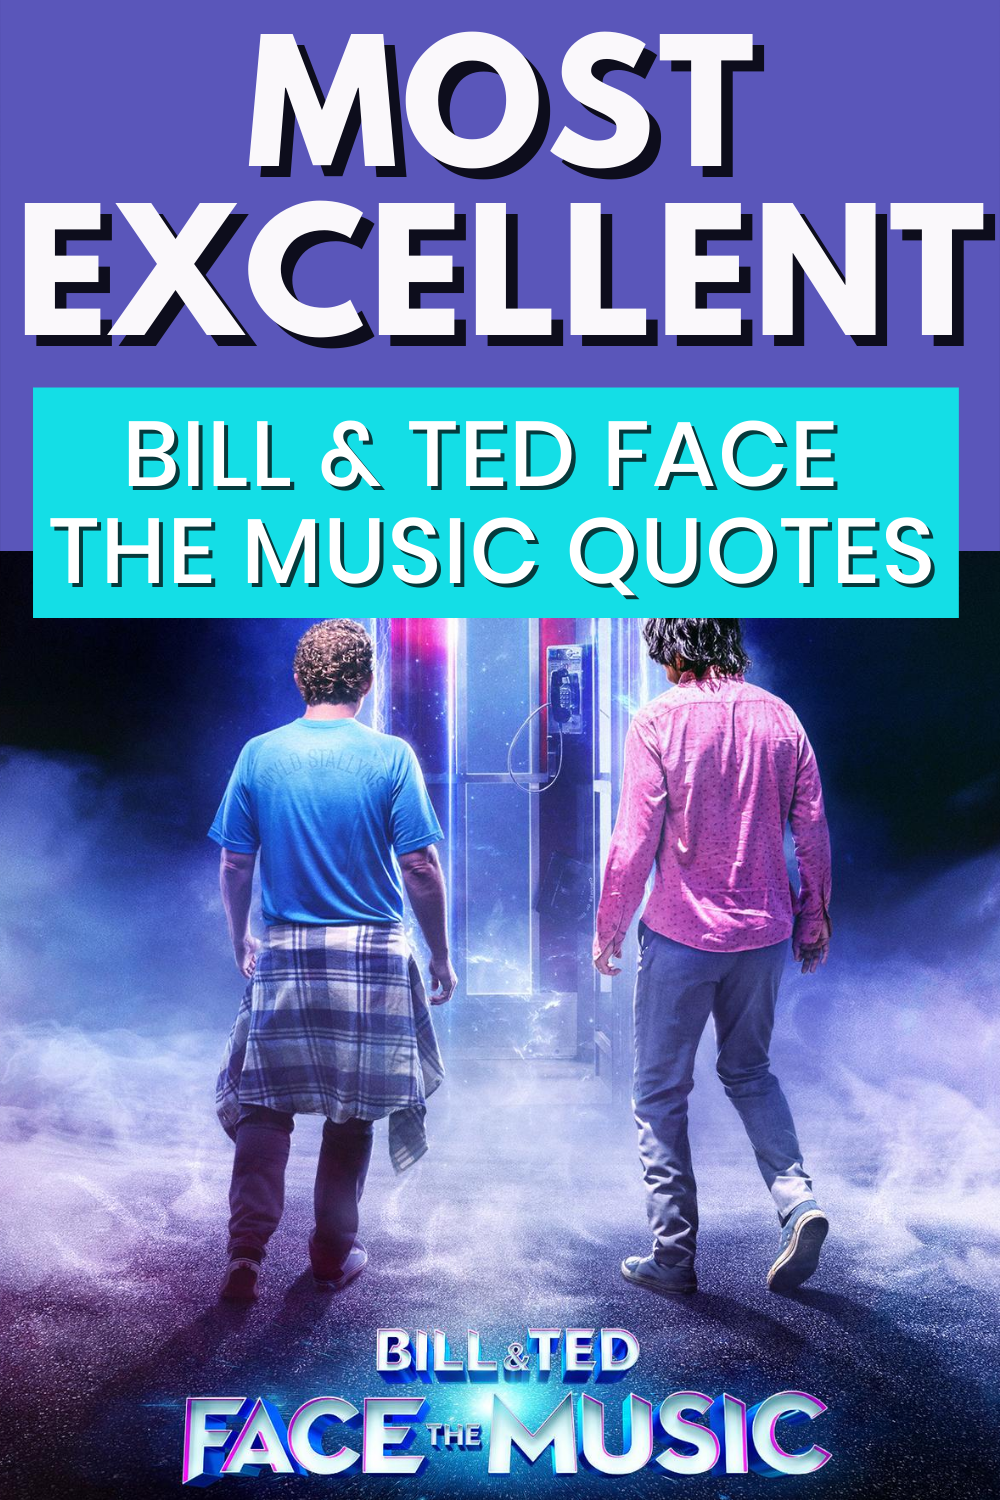 Funny Bill Ted Face The Music Quotes From Bill Ted 3 Popcorner Reviews